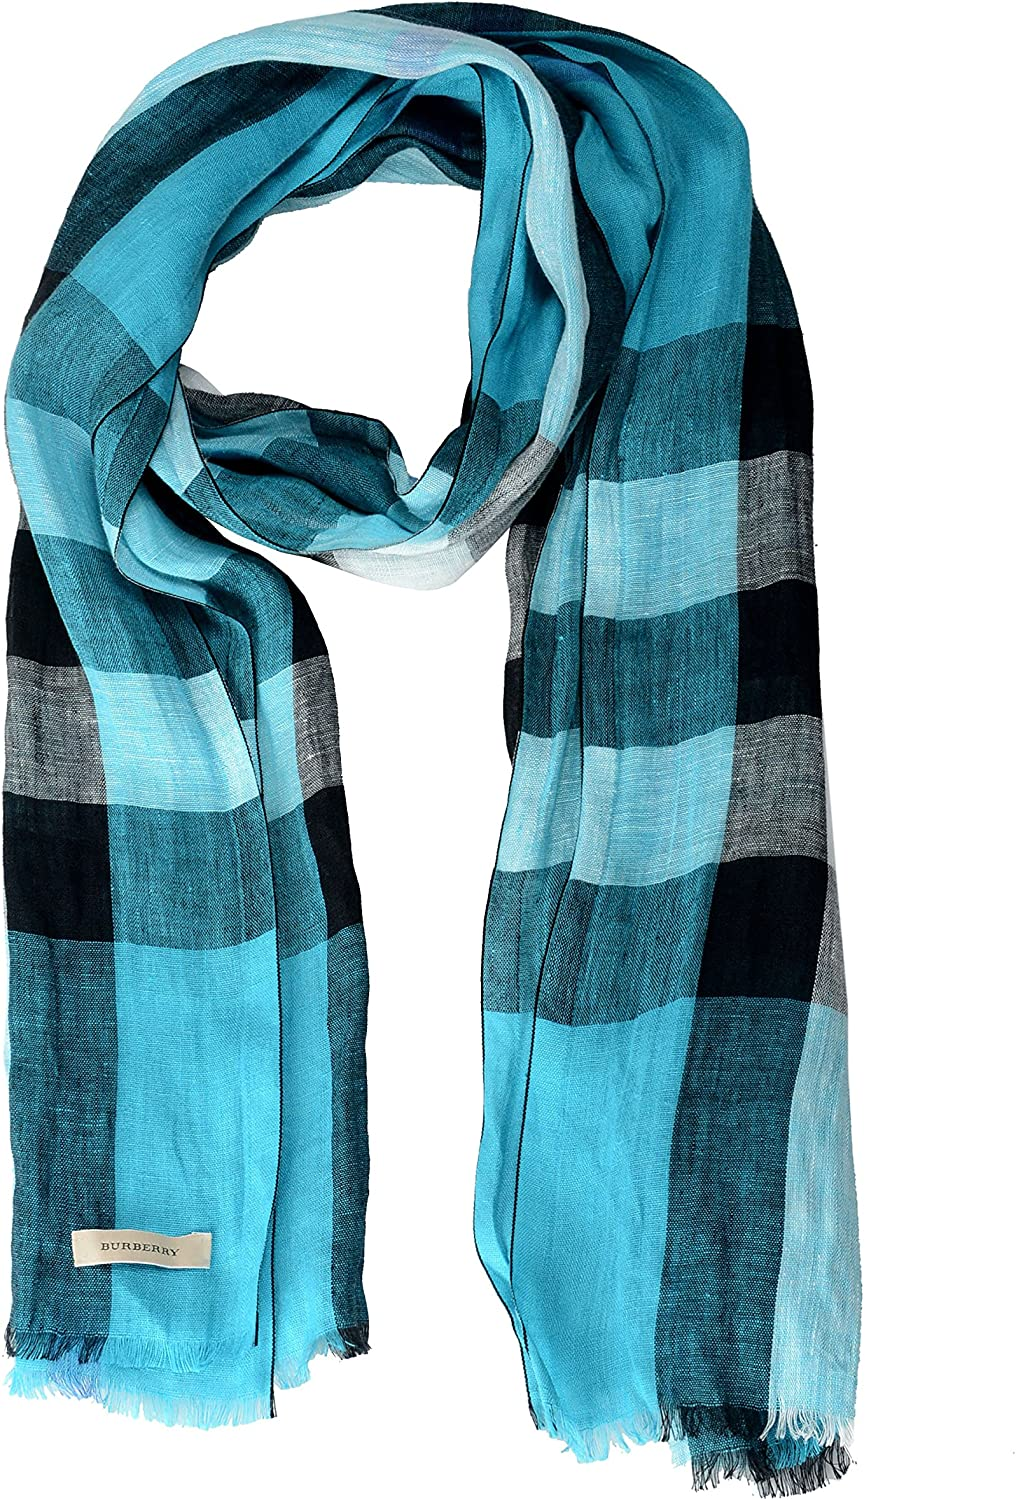 Burberry Unisex 100% Linen Plaid Multicolor Lightweight Scarf